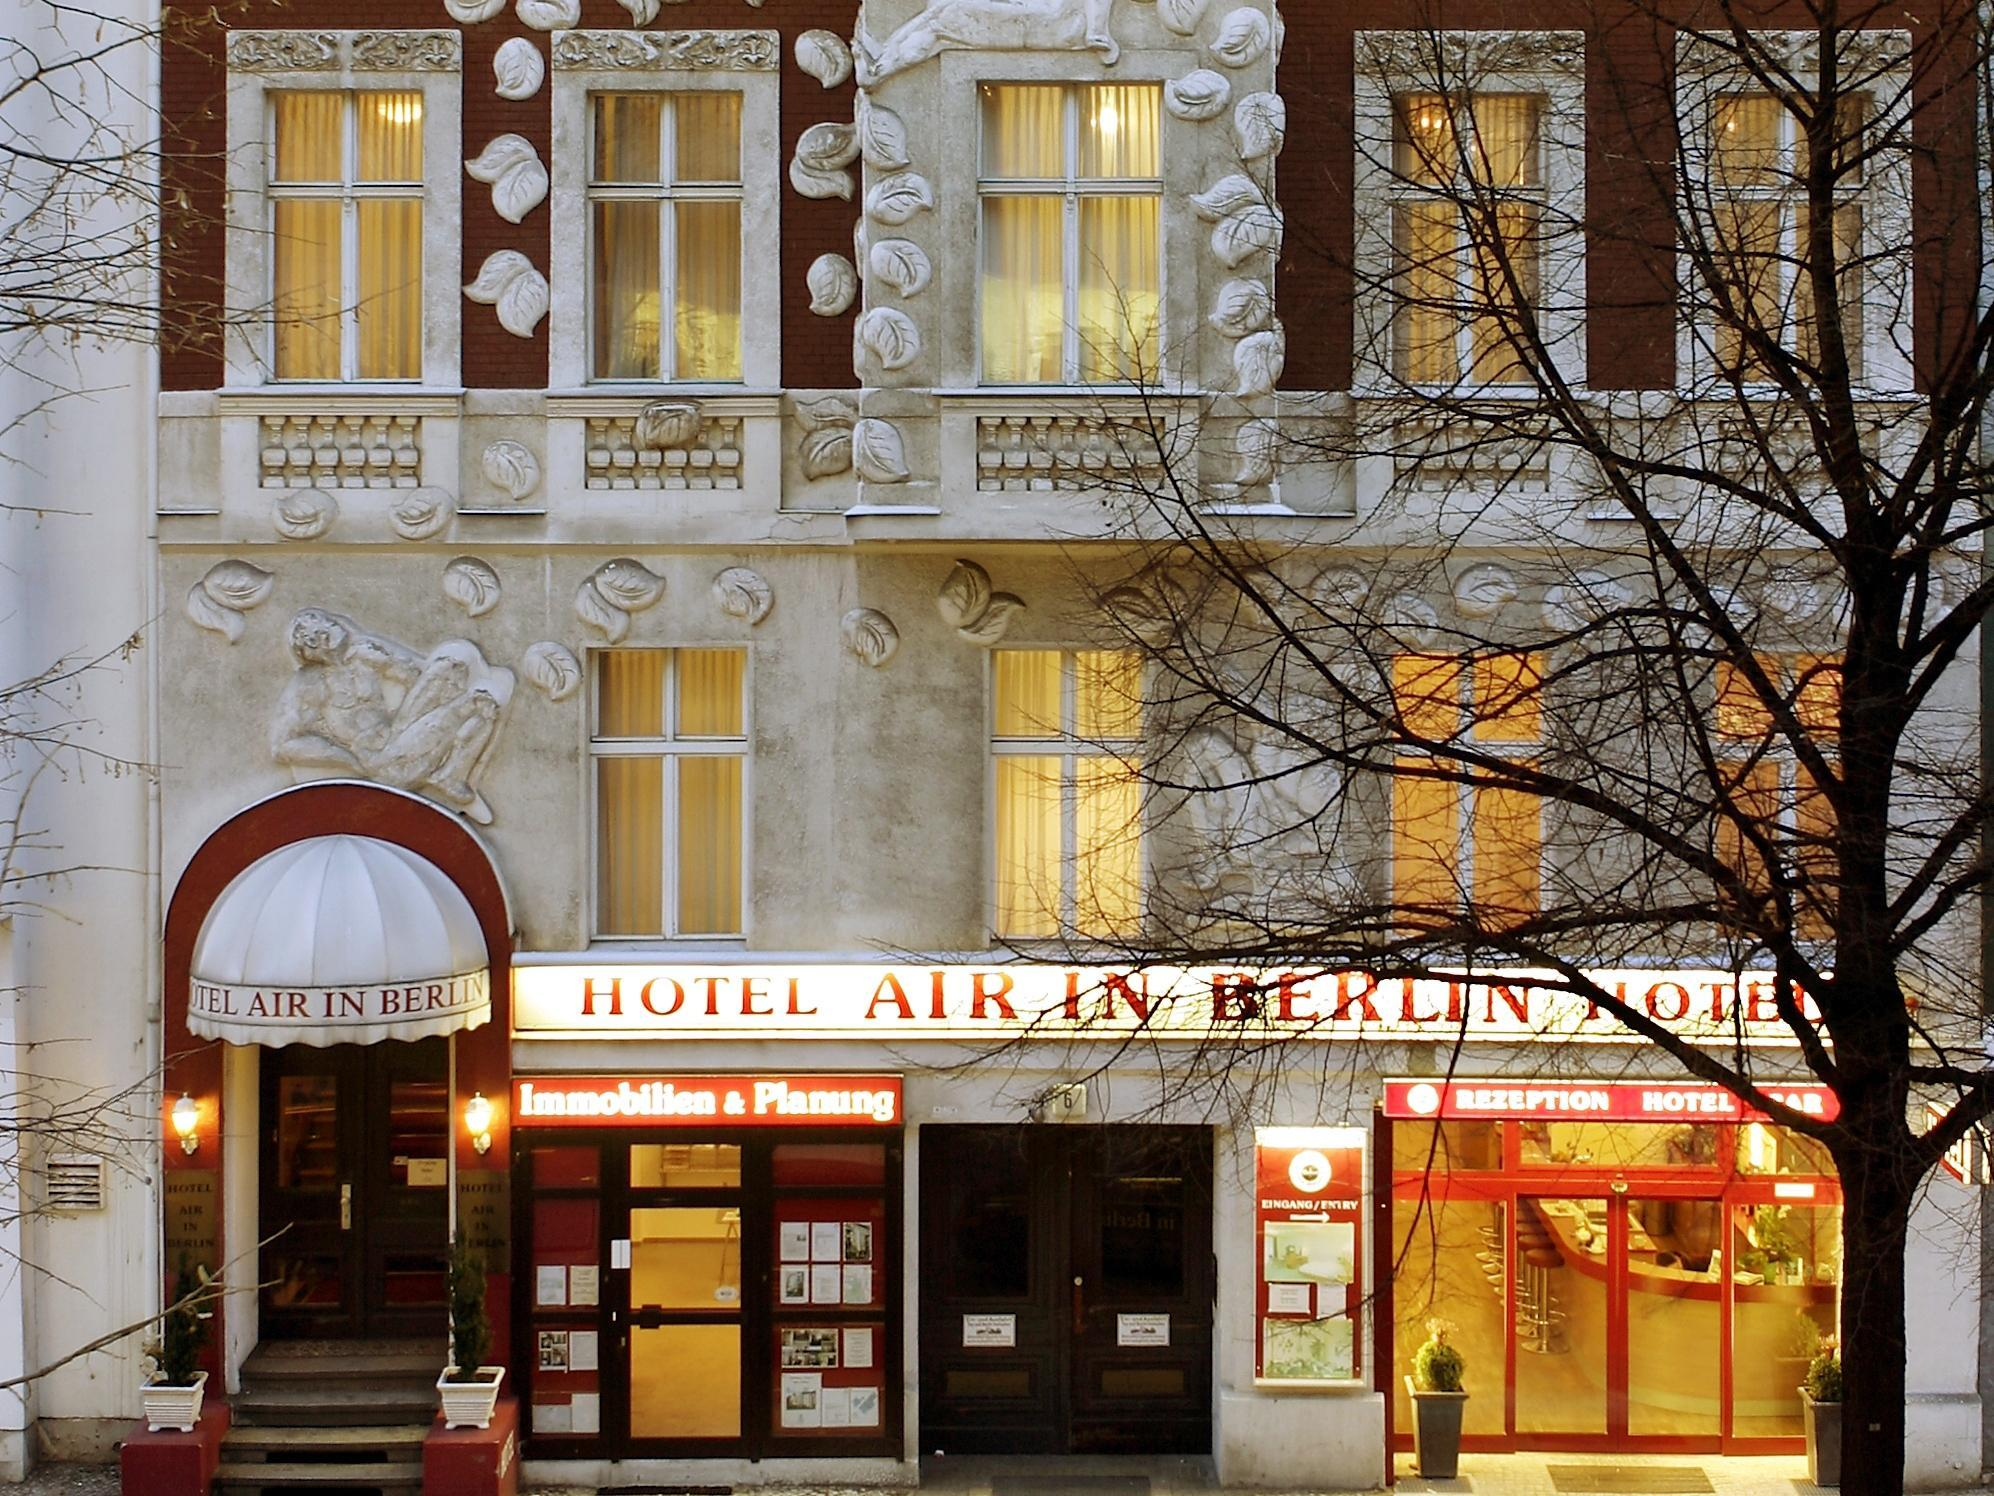 Hotel Air in Berlin Berlijn